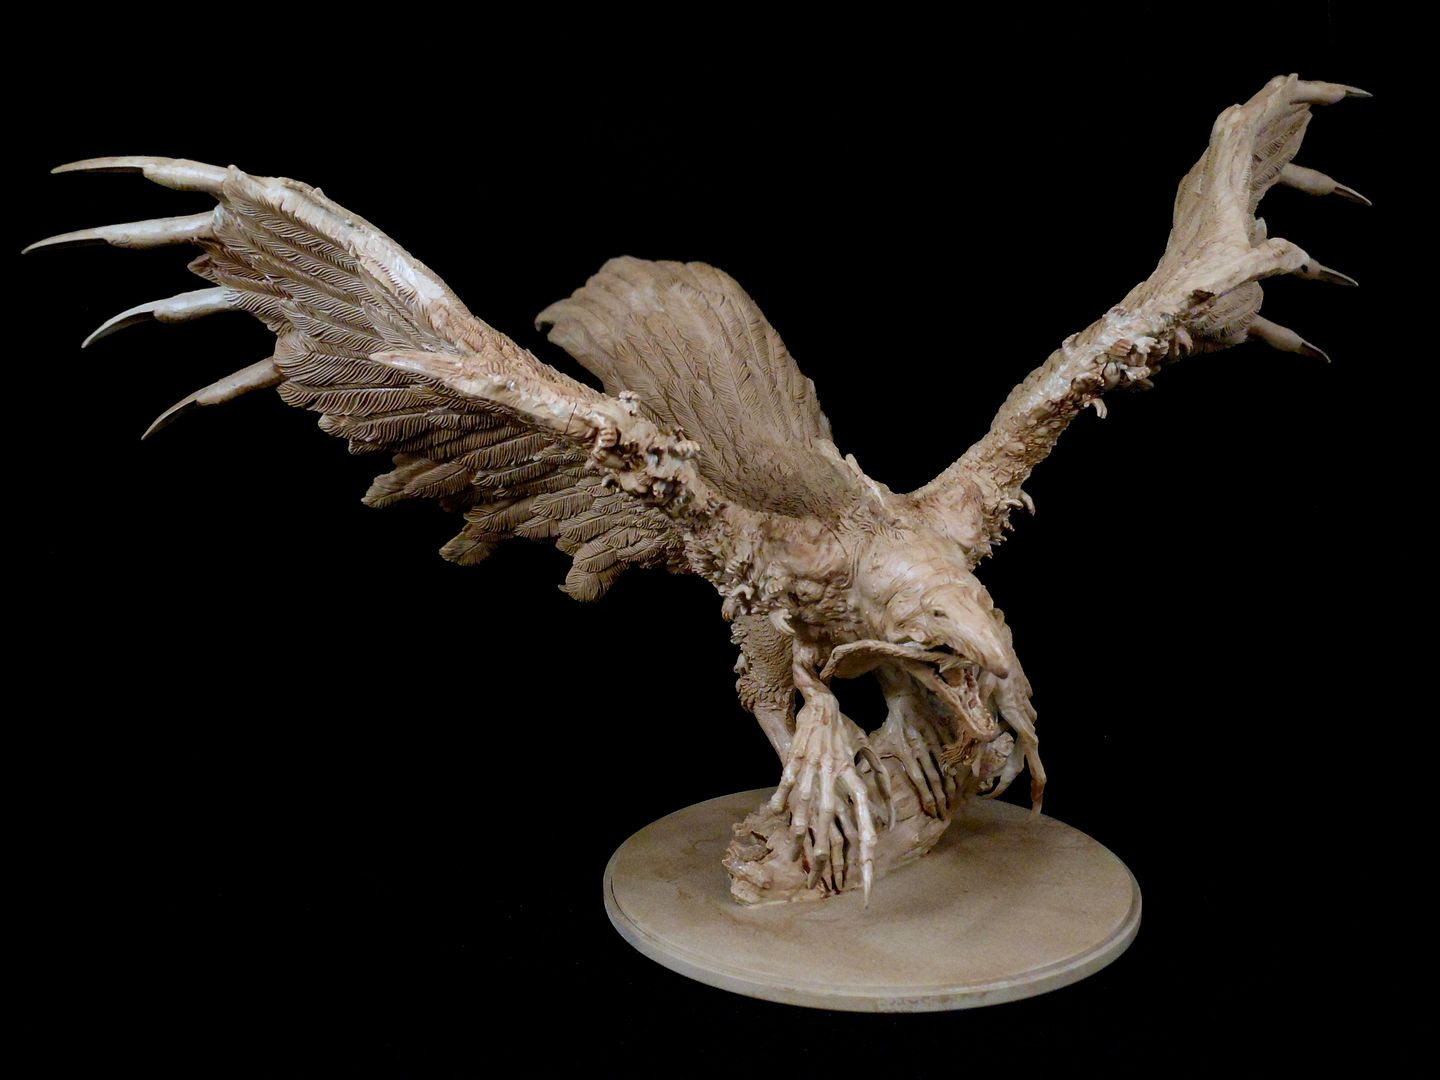 The phoenix from Kingdom Death: Monster, washed with soft tone to shade and bring out detail.